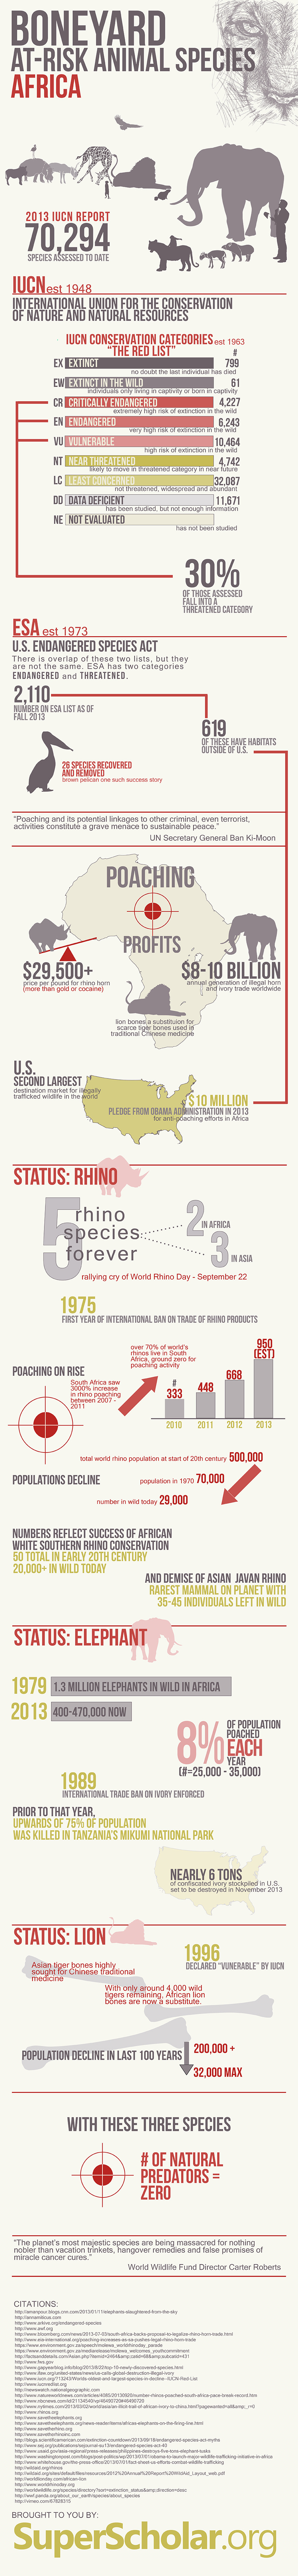 How Poaching Has affected the African Wildlife